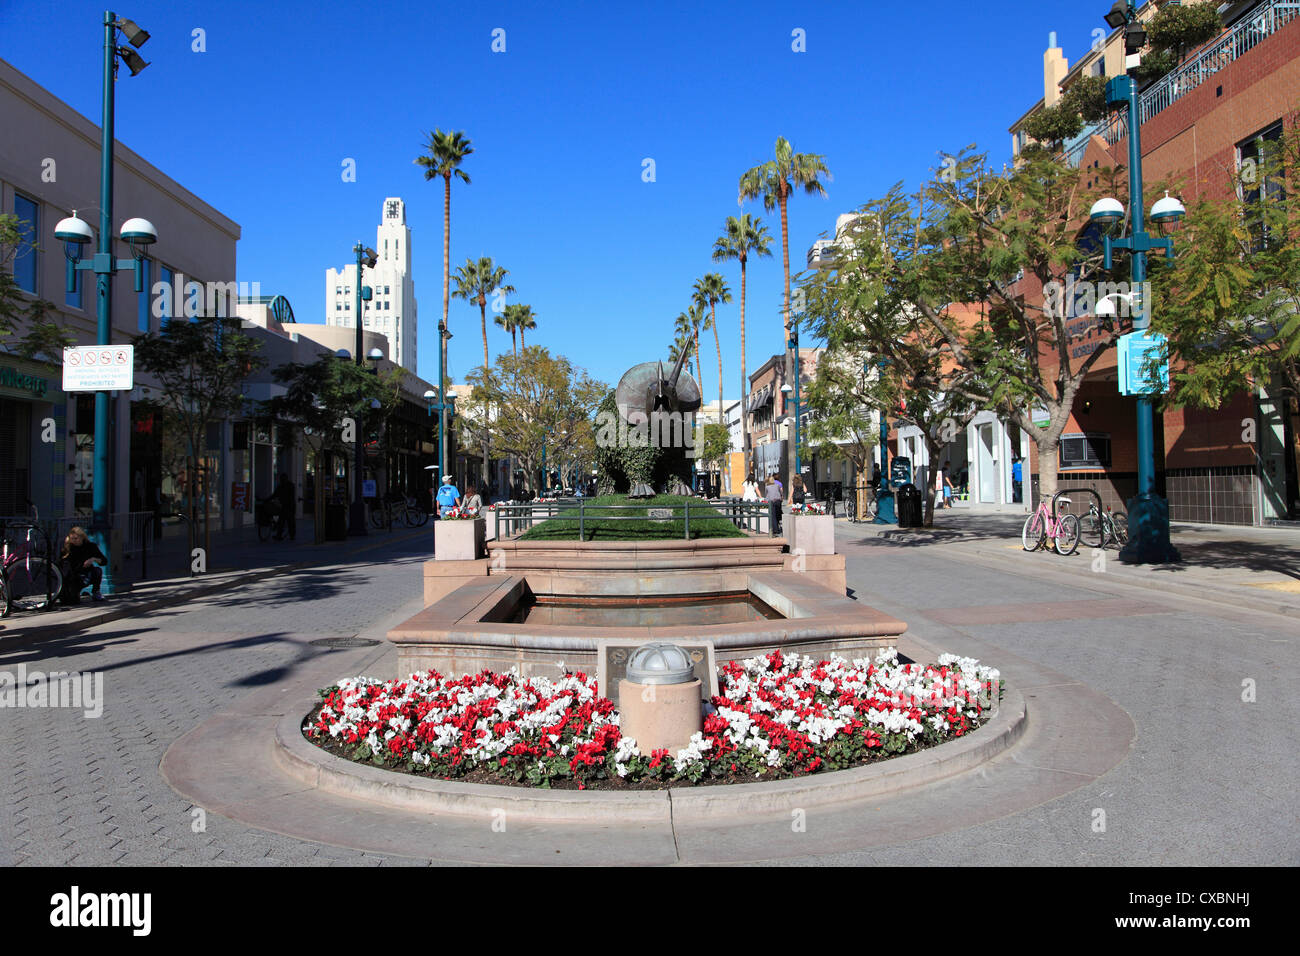 A four-block pedestrianized stretch that runs down Third Street from Wilshire Boulevard to Colorado Avenue, Third Street Promenade is a pleasant but bland parade of mostly familiar names (Gap /5(6).